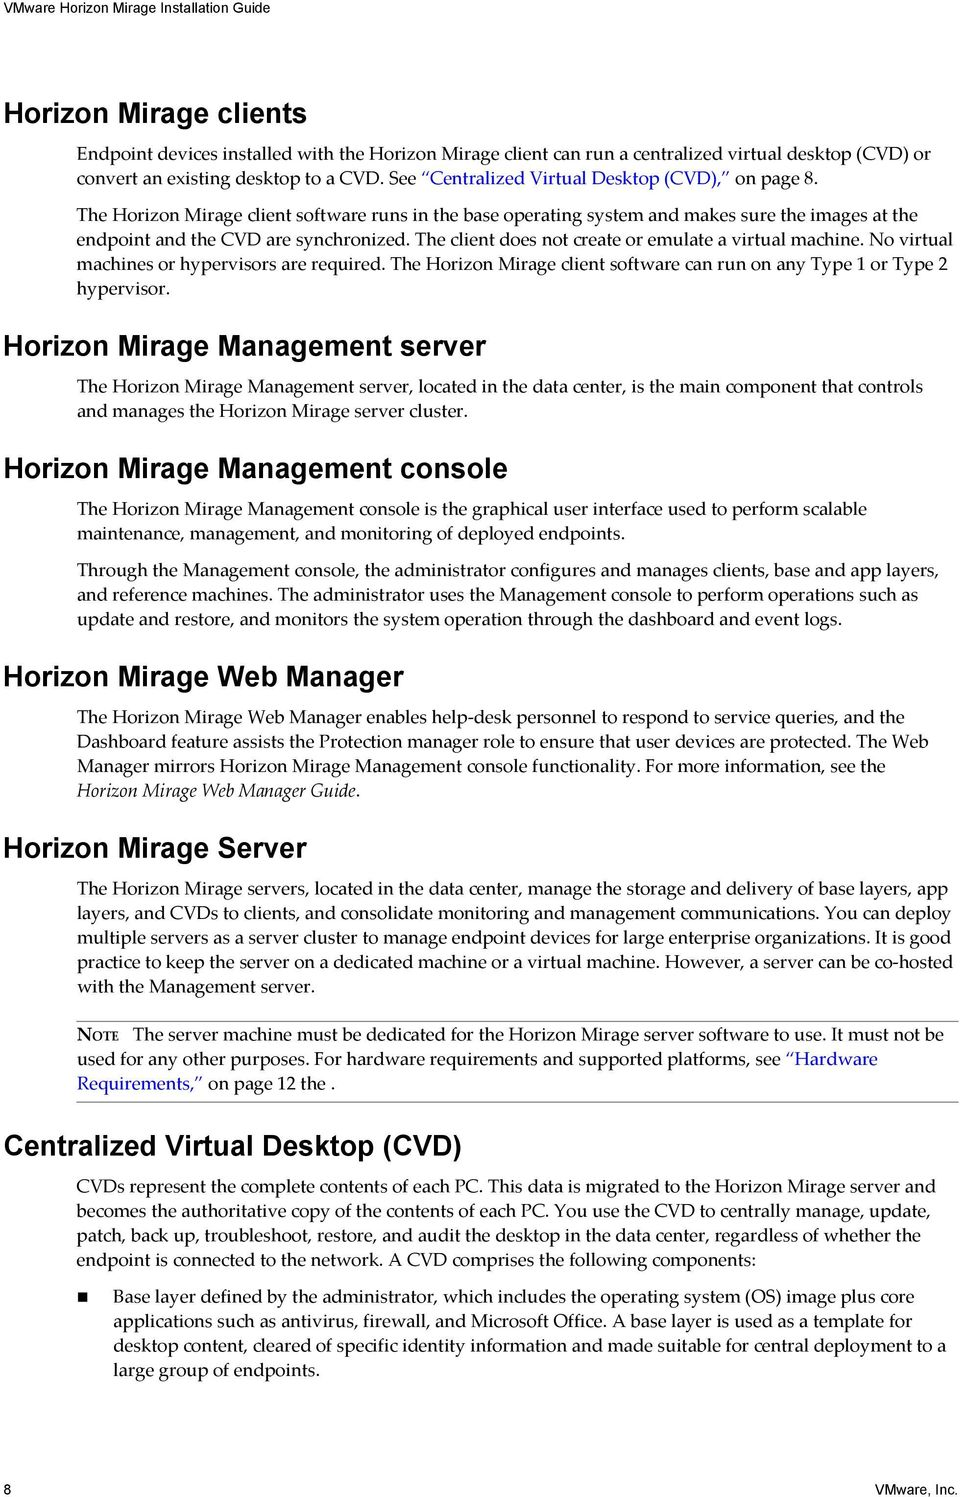 The client does not create or emulate a virtual machine. No virtual machines or hypervisors are required. The Horizon Mirage client software can run on any Type 1 or Type 2 hypervisor.